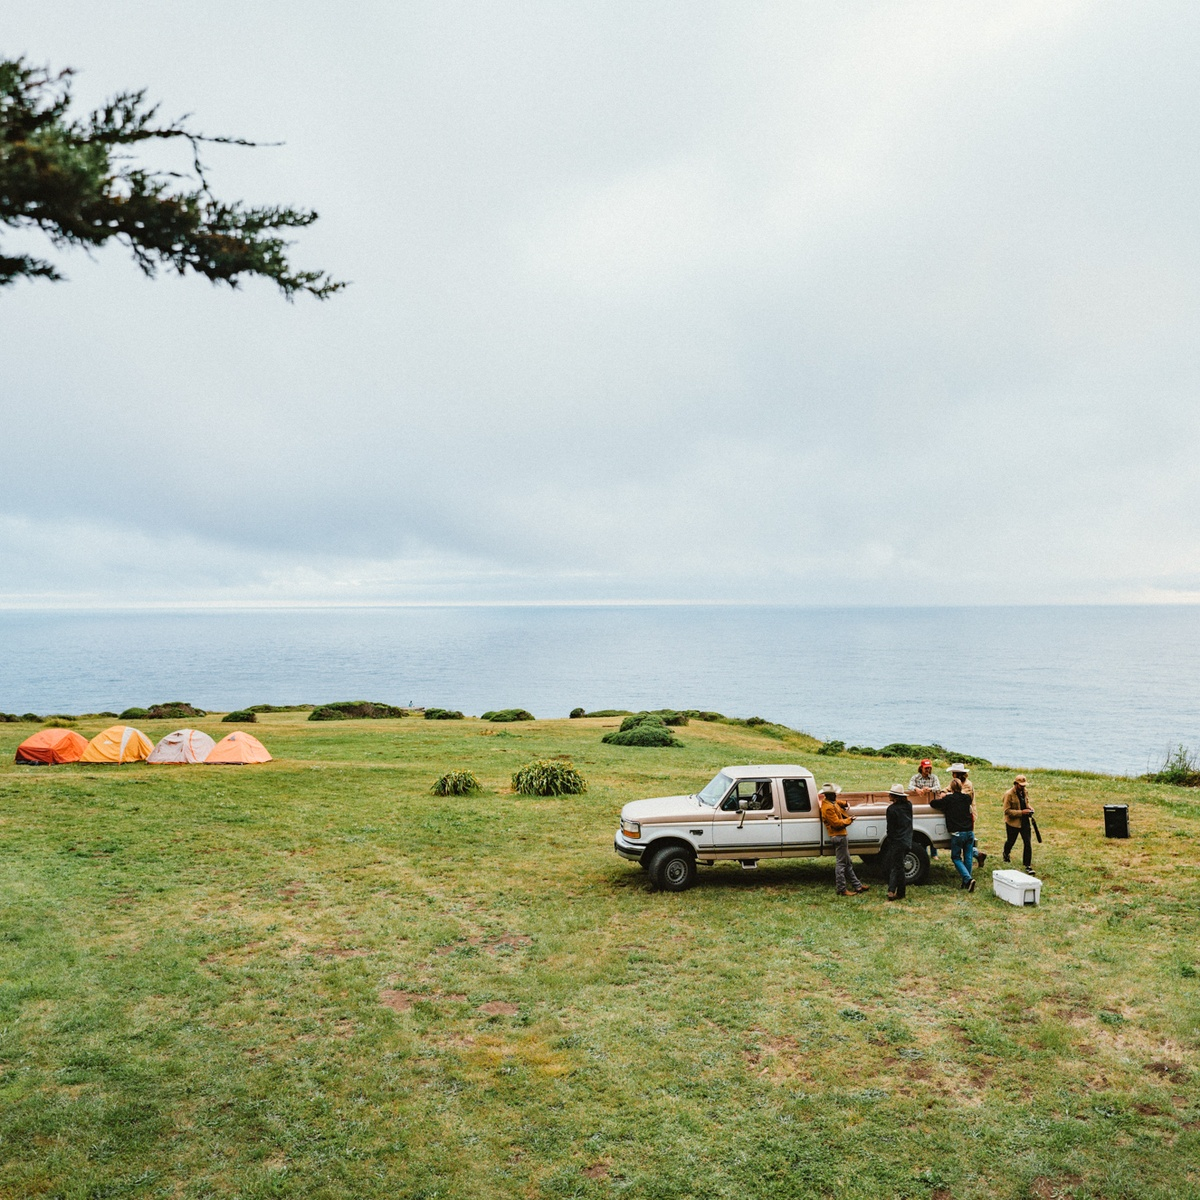 Camping in a vast field with a truck and a SOUNDBOKS